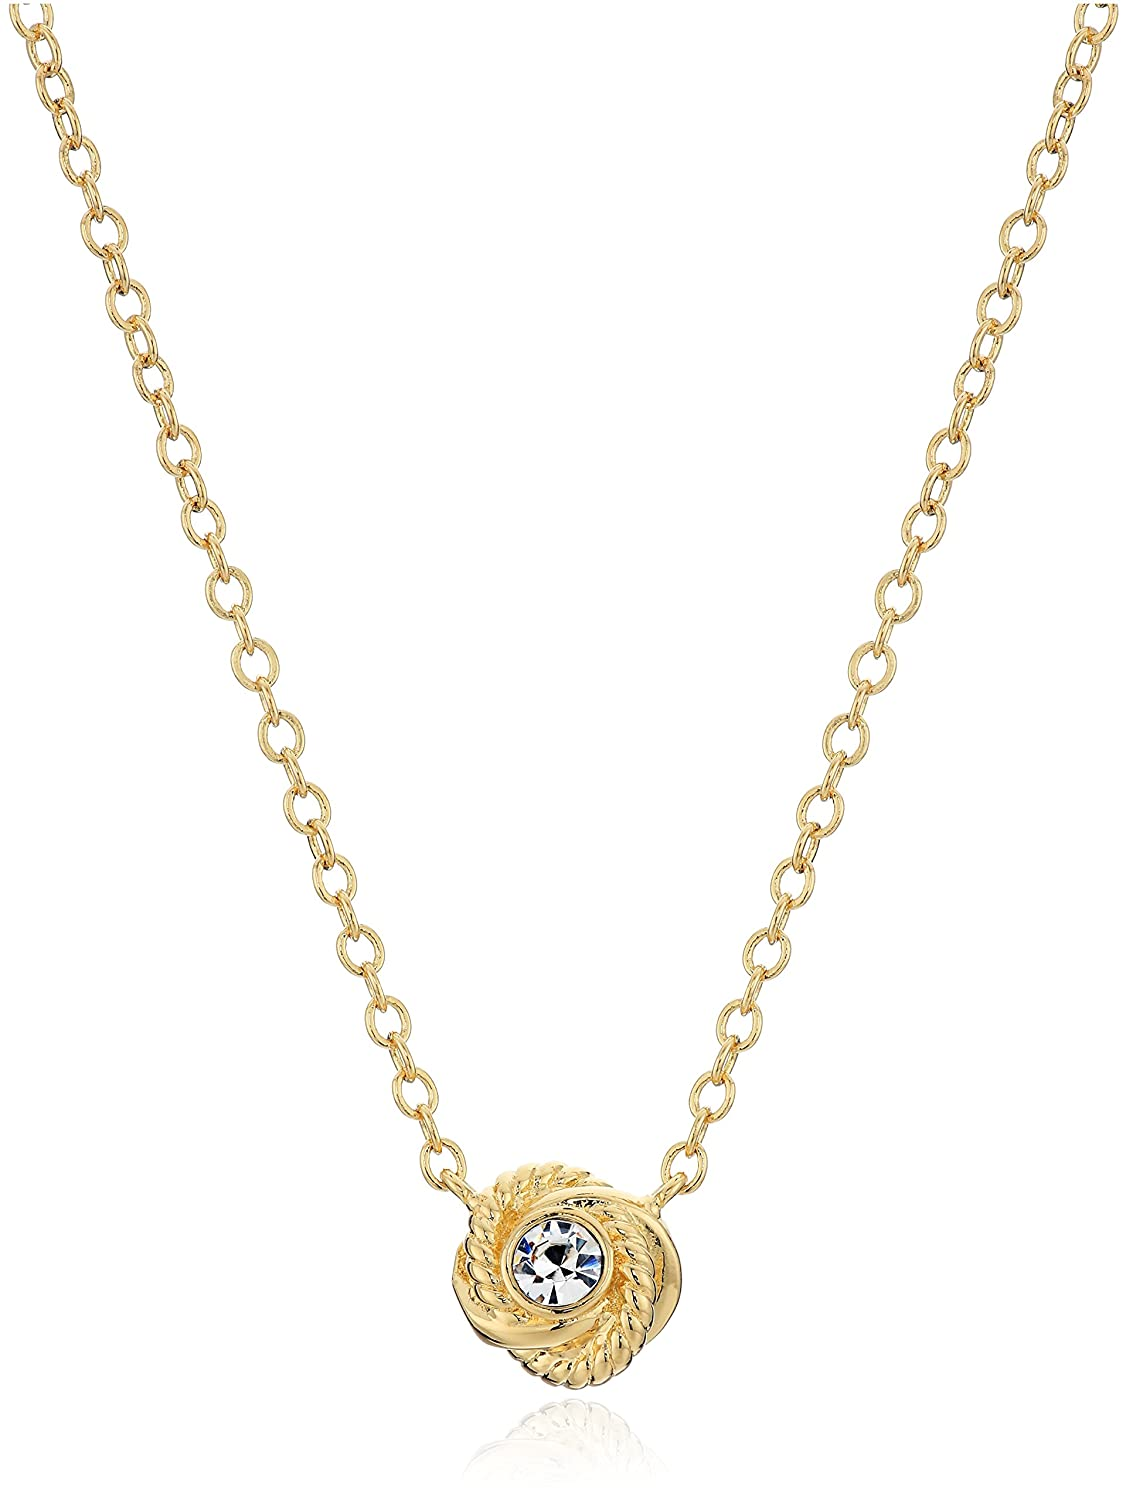 kate spade new york Infinity and Beyond Knot Mini Pendant Necklace kate spade jewelry WBRUC362921